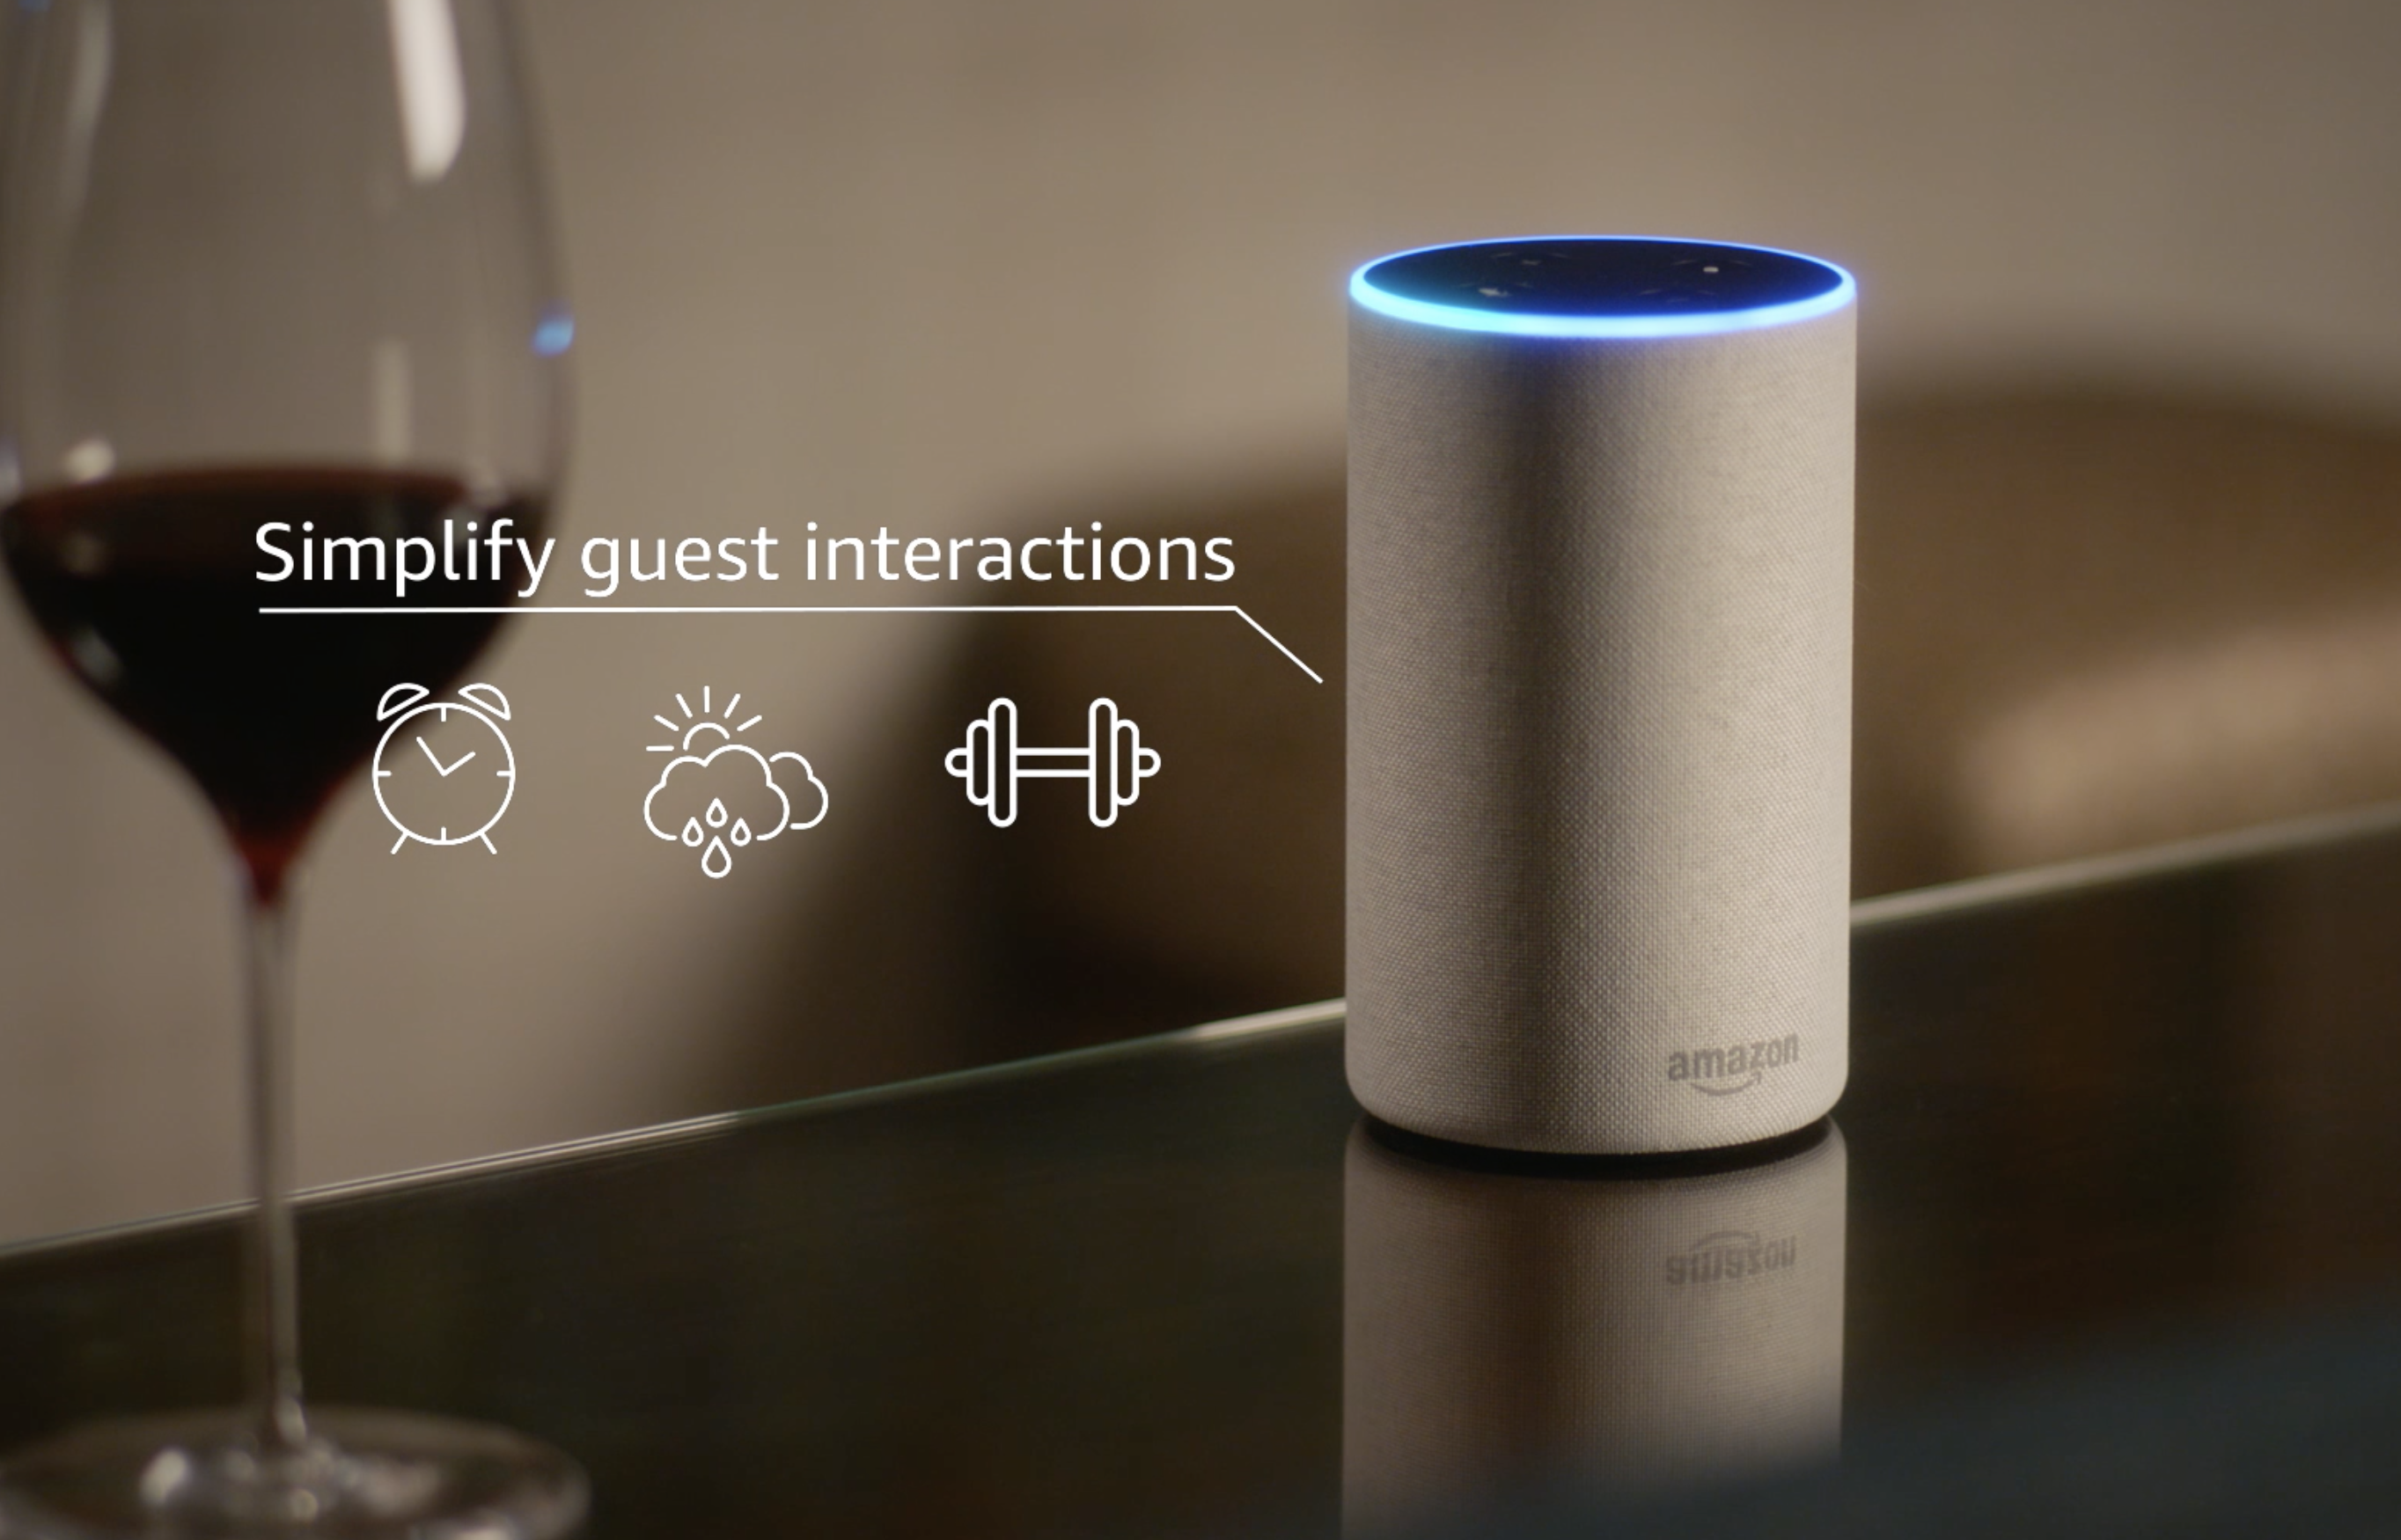 Amazon's Alexa is coming to a hotel room near you